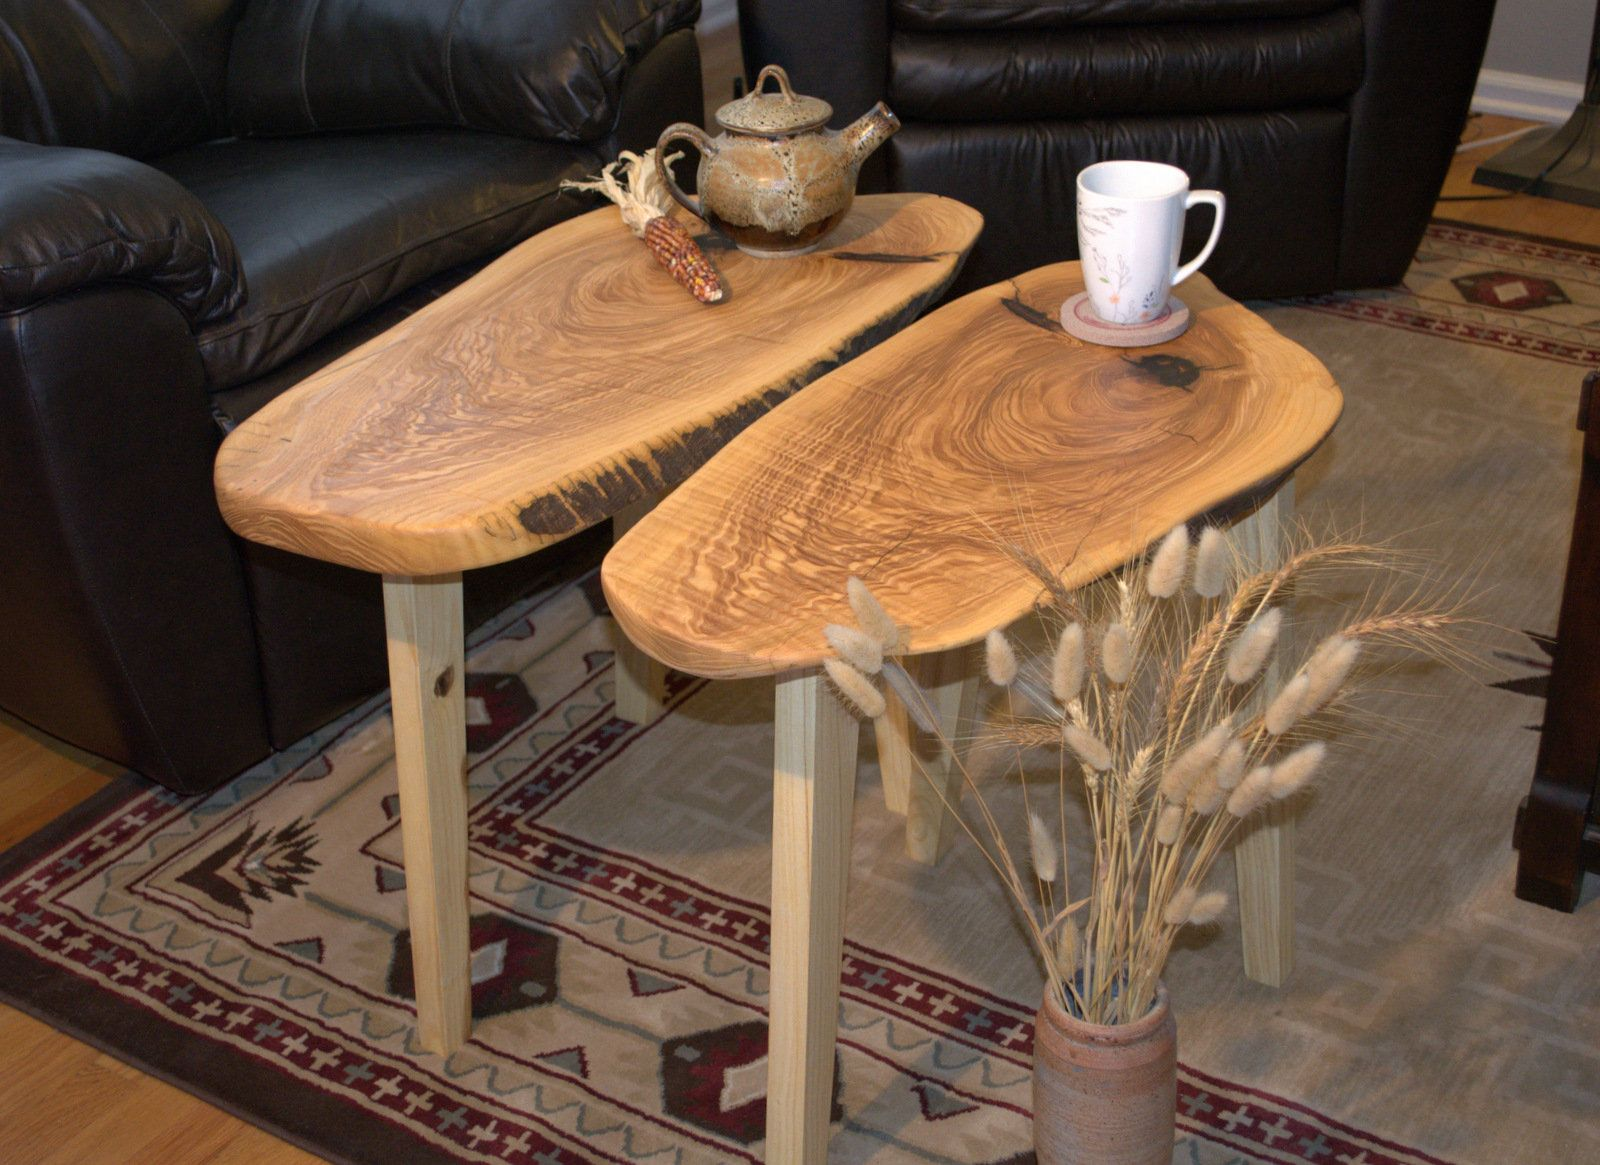 Side Table End Table Bookend Table Set Of 2 Tables Live Edge Bookend Matching Tables Rustic Country Farmhouse Side Table Reclaimed Wood Table End Tables [ 1165 x 1600 Pixel ]